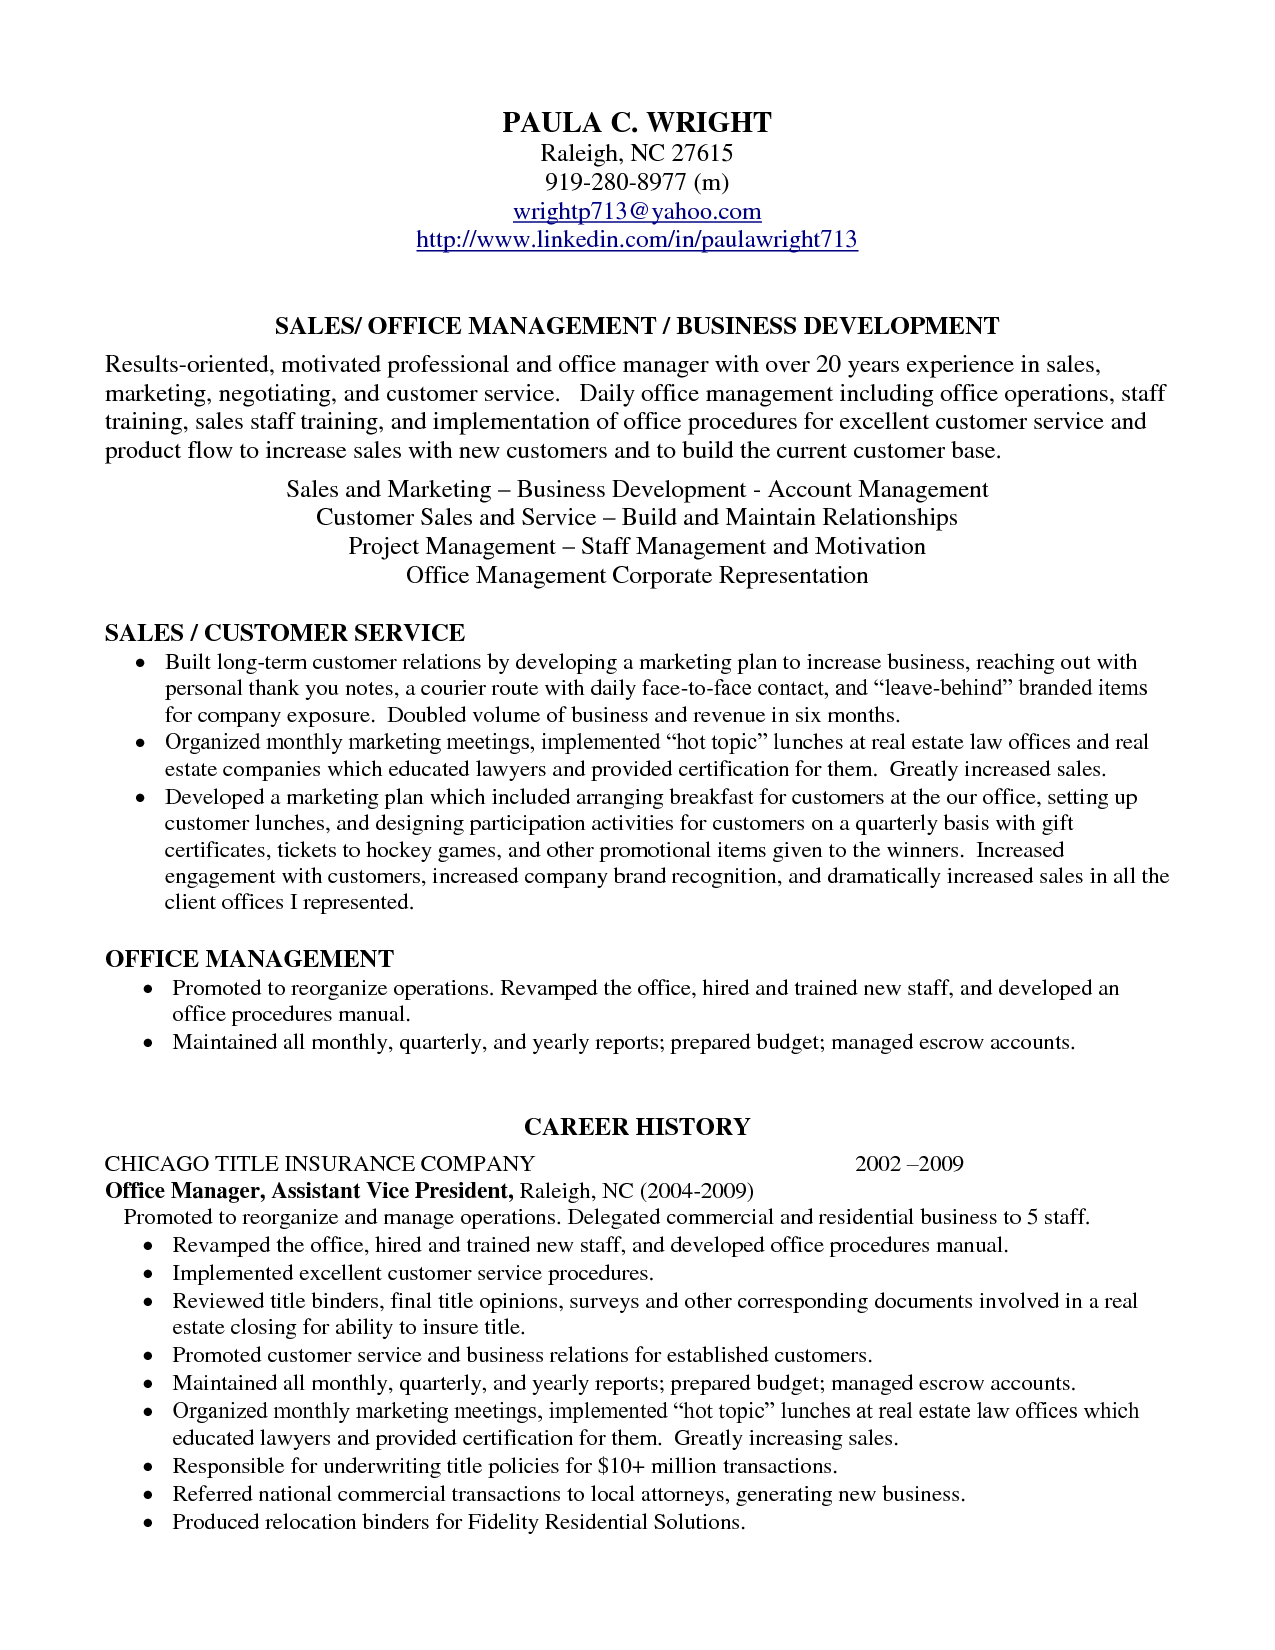 professional profile resume examples resume professional profile examples - Business Profile Resume Sample